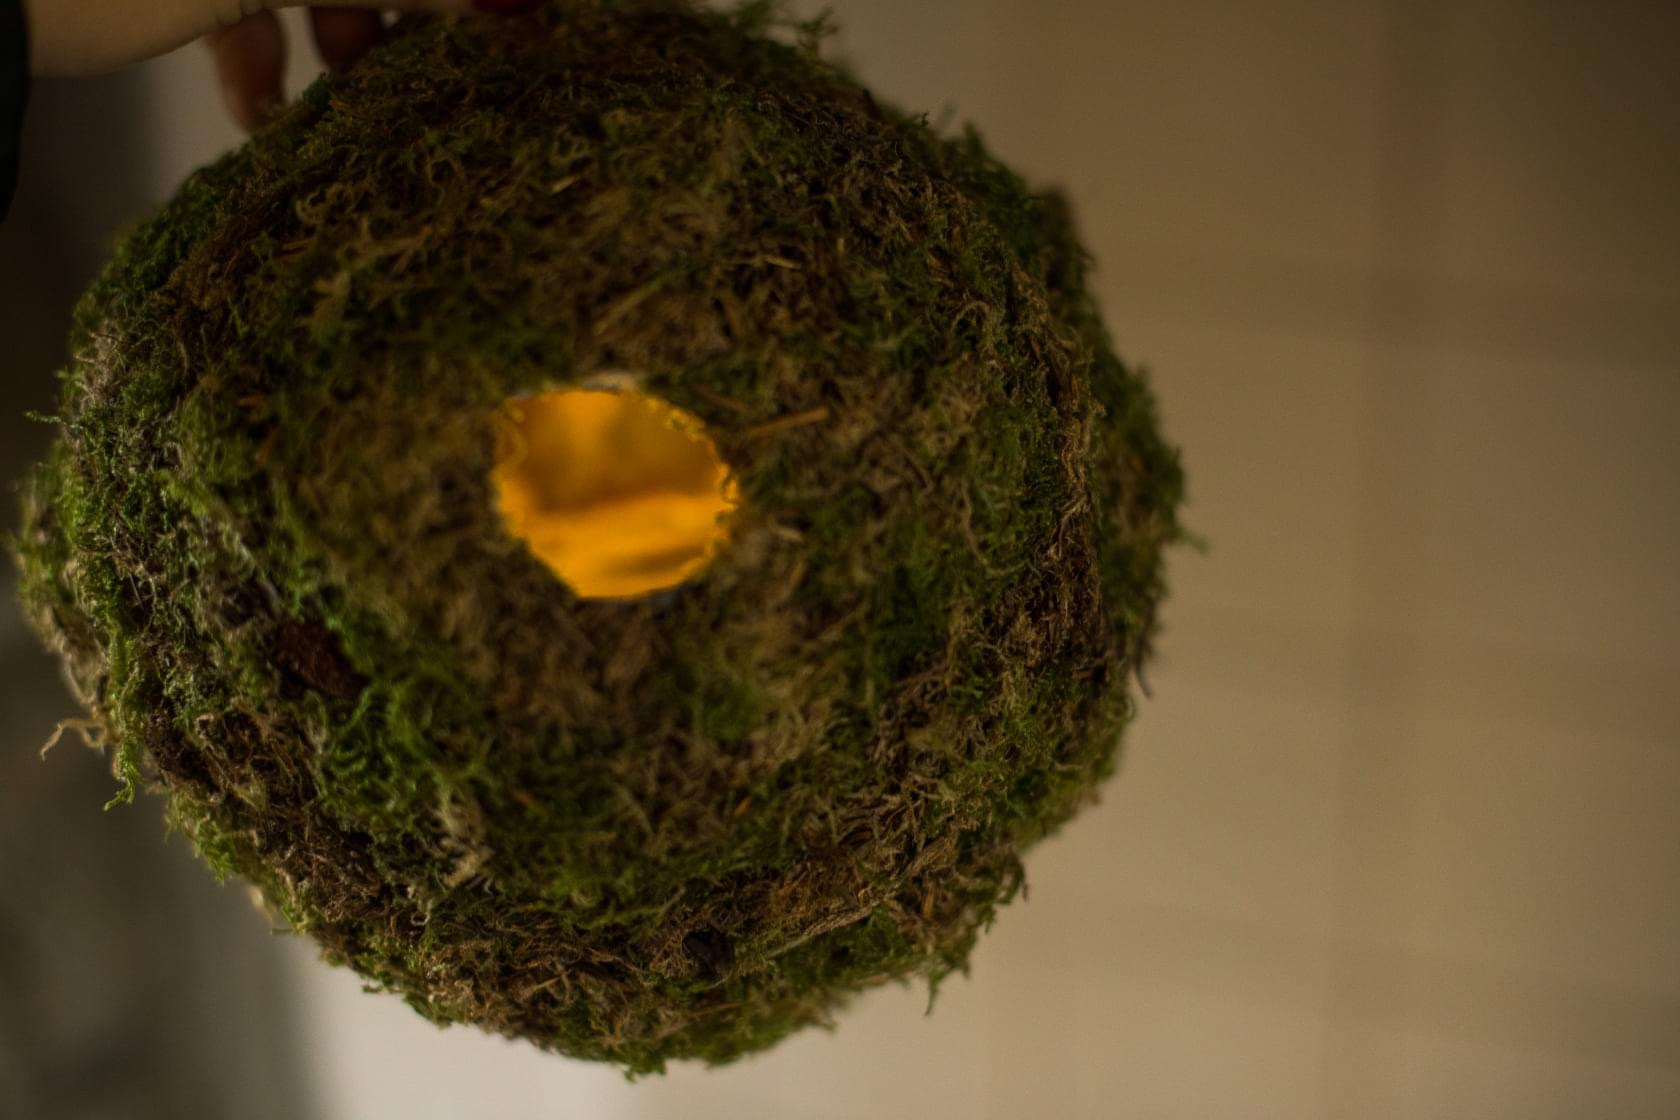 moss, paper, acrylic paint, iron wire, diameter approx 20 - 25 cm, 2020